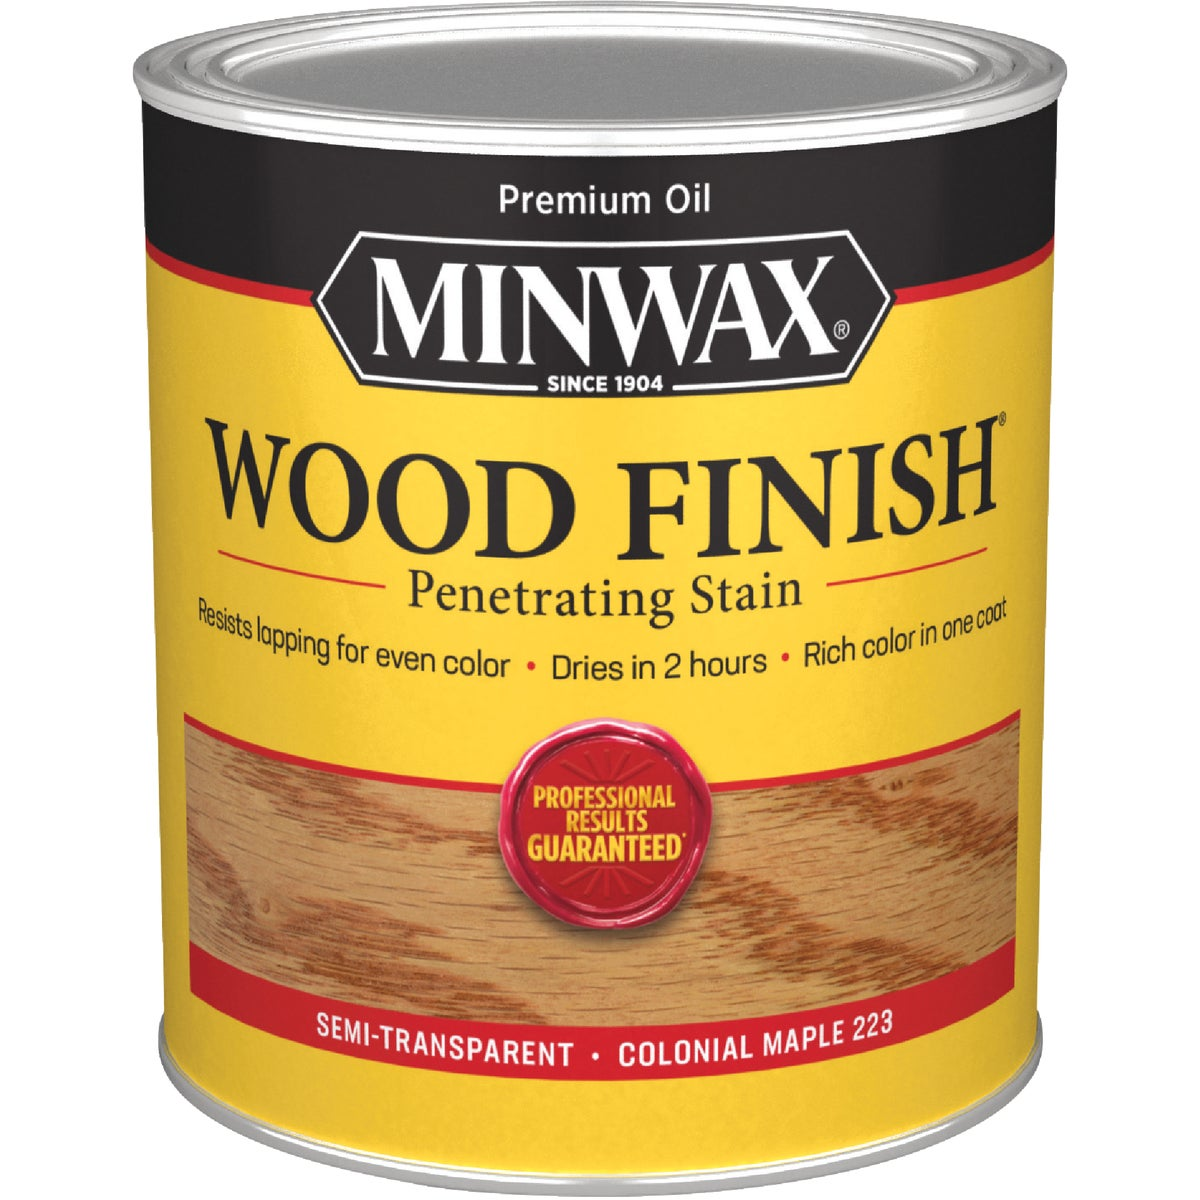 COLNL MAPLE WOOD STAIN - 70005 by Minwax Company